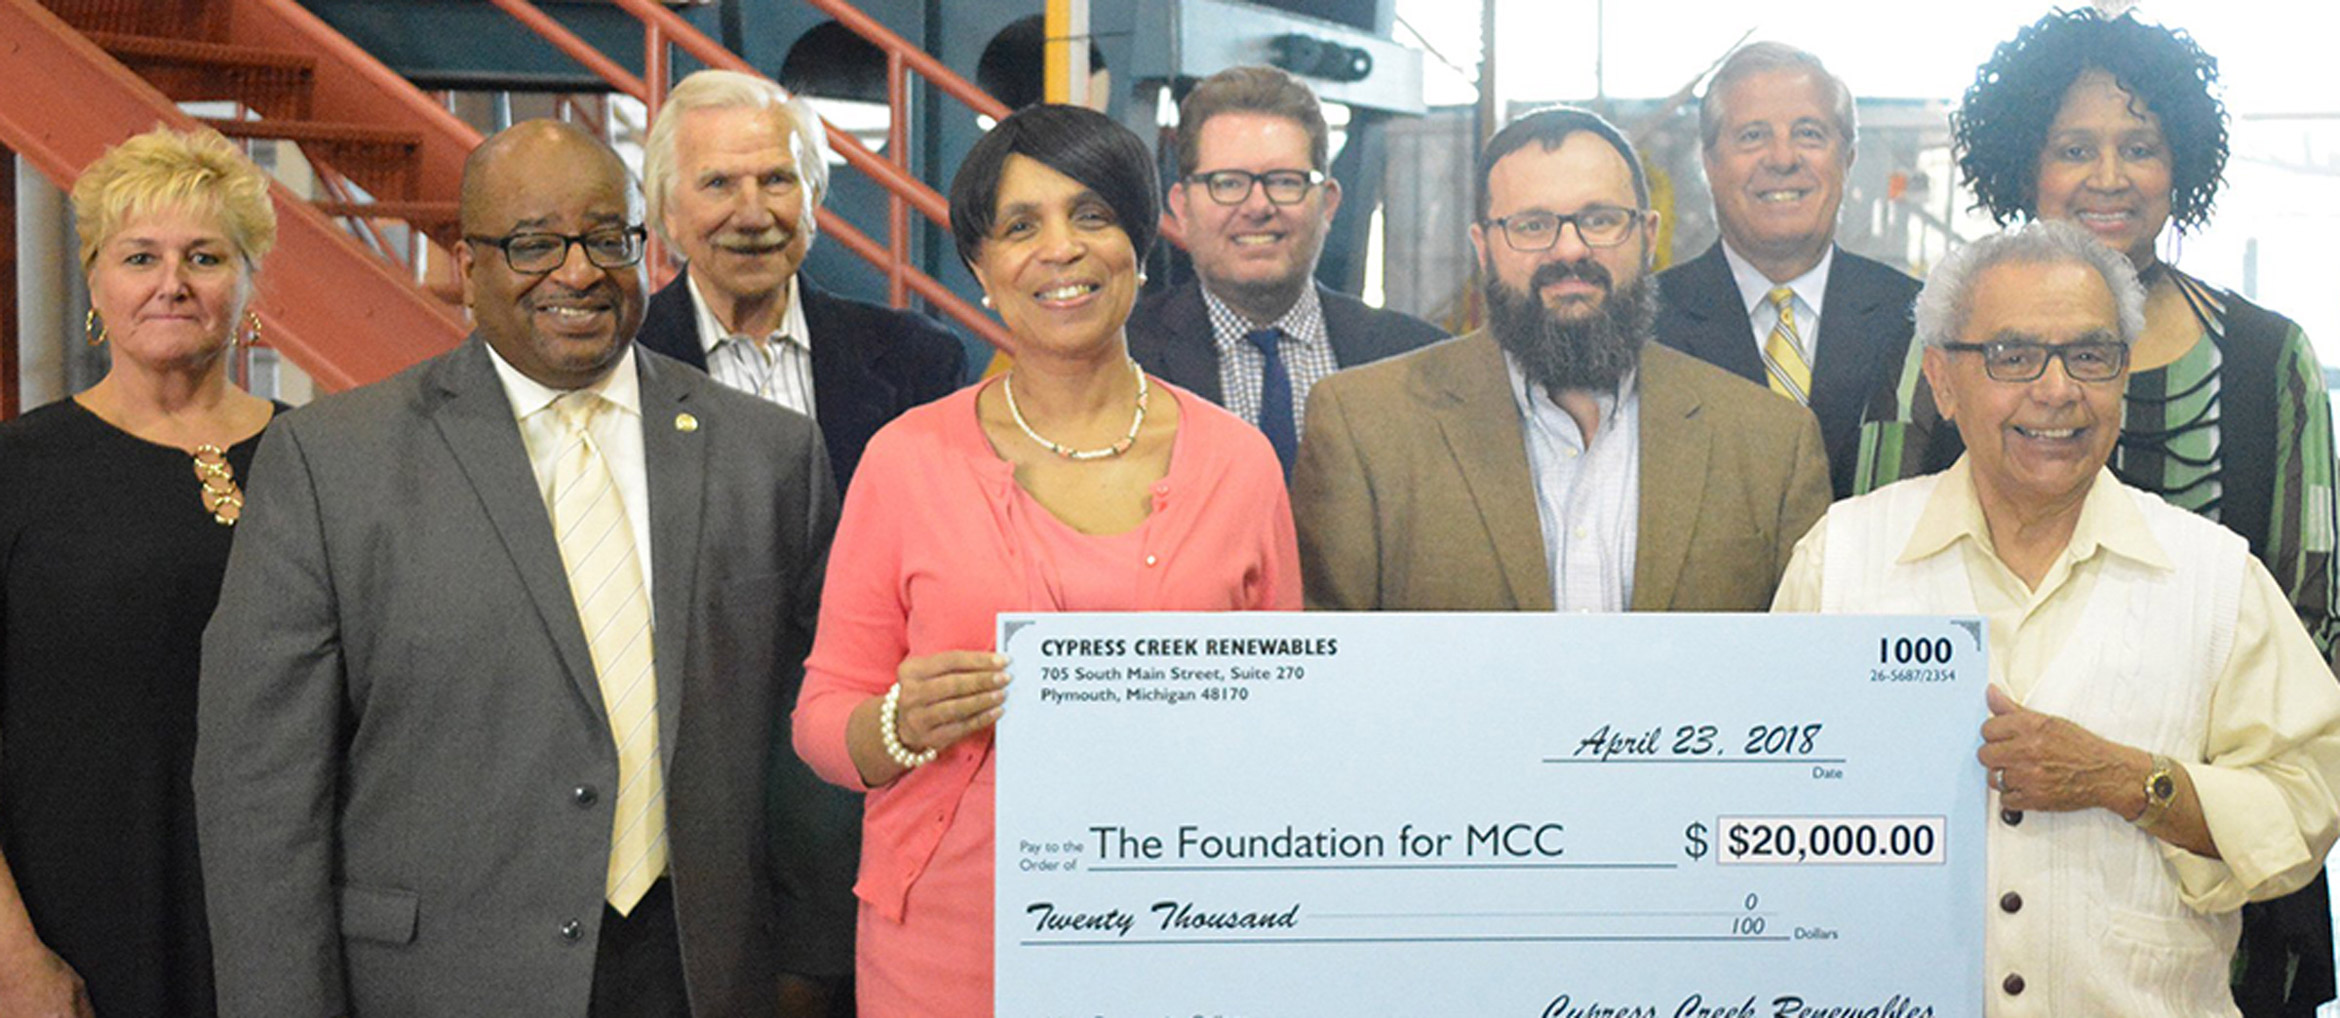 Group of men and women pose with large check at college partnership announcement